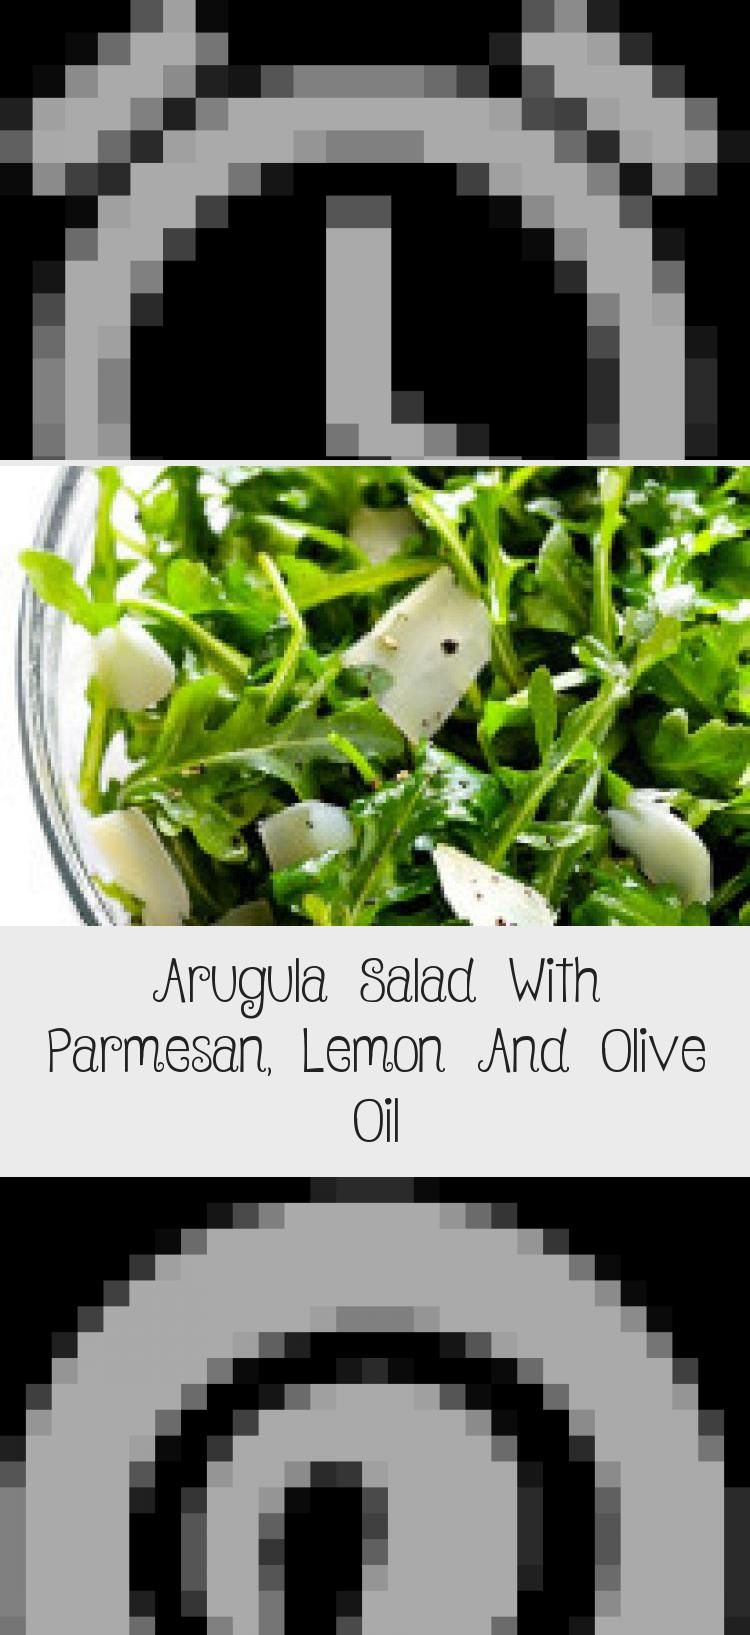 5-Ingredient Arugula Salad with Parmesan, Lemon and Olive Oil -- super easy, and always so fresh and tasty! | gimmesomeoven.com #Tunasalad #saladPrintemps #Beetsalad #saladBuah #saladPates